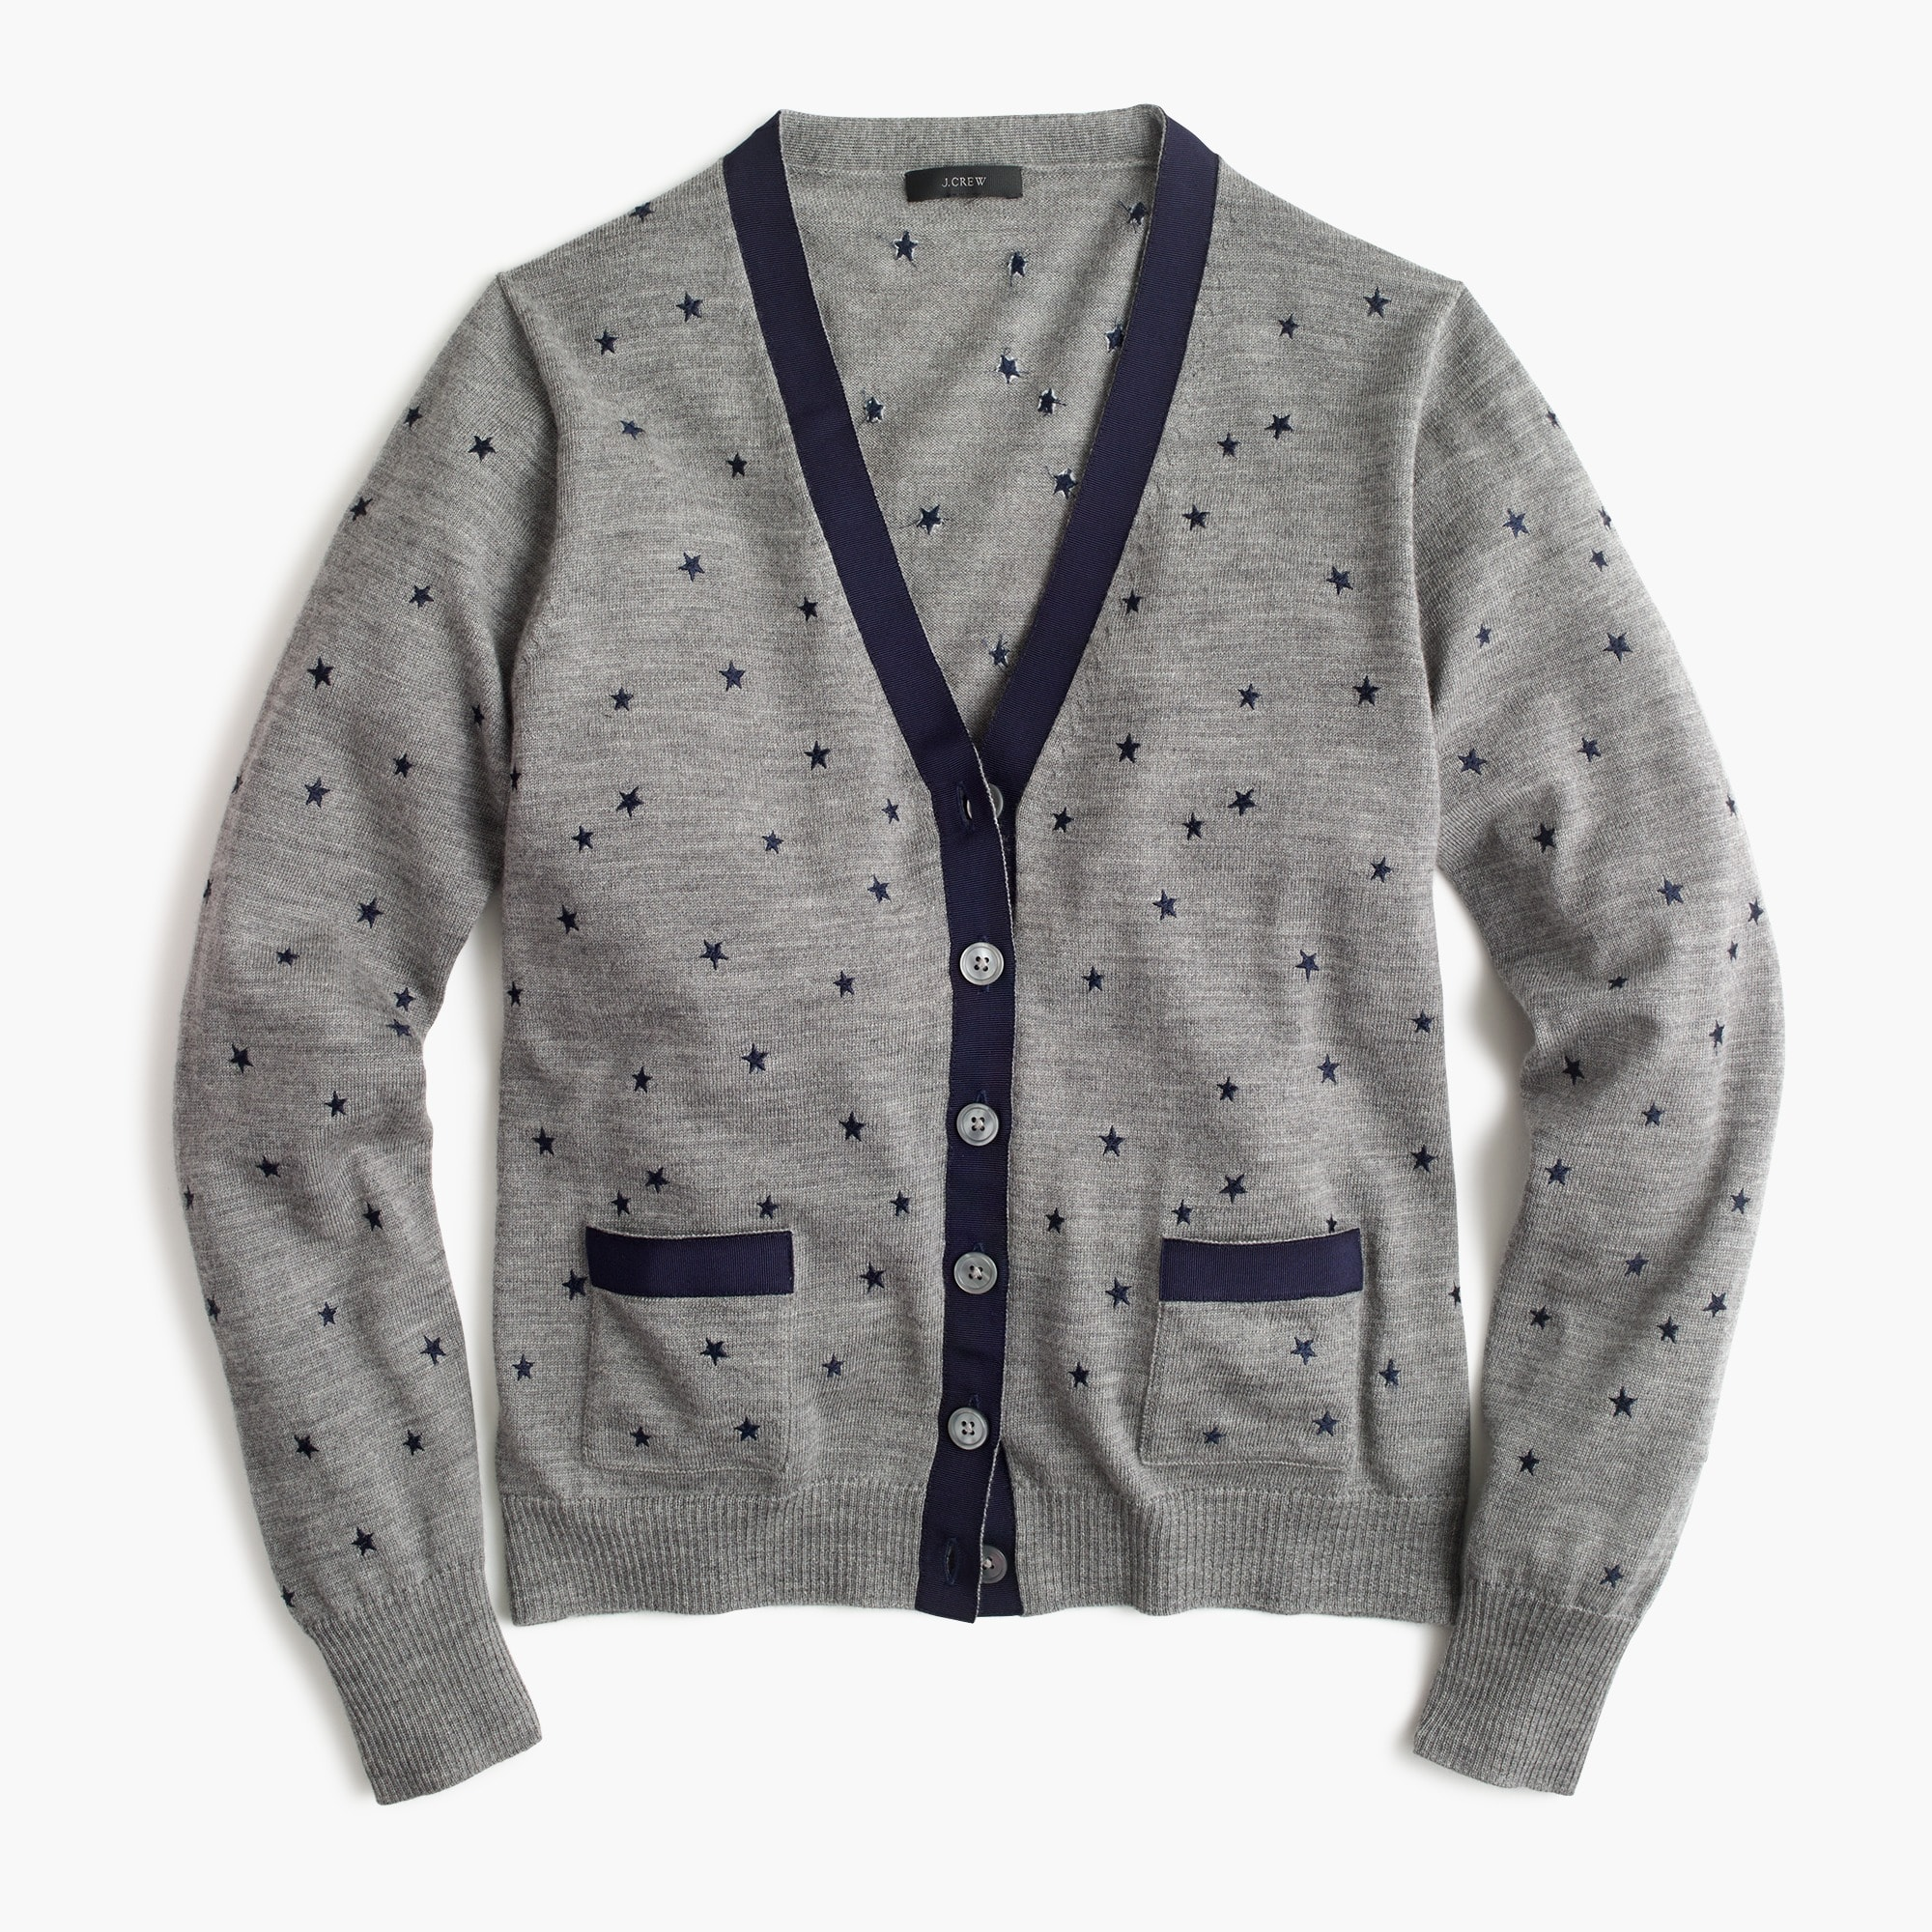 harlow cardigan sweater in star print : women sweaters